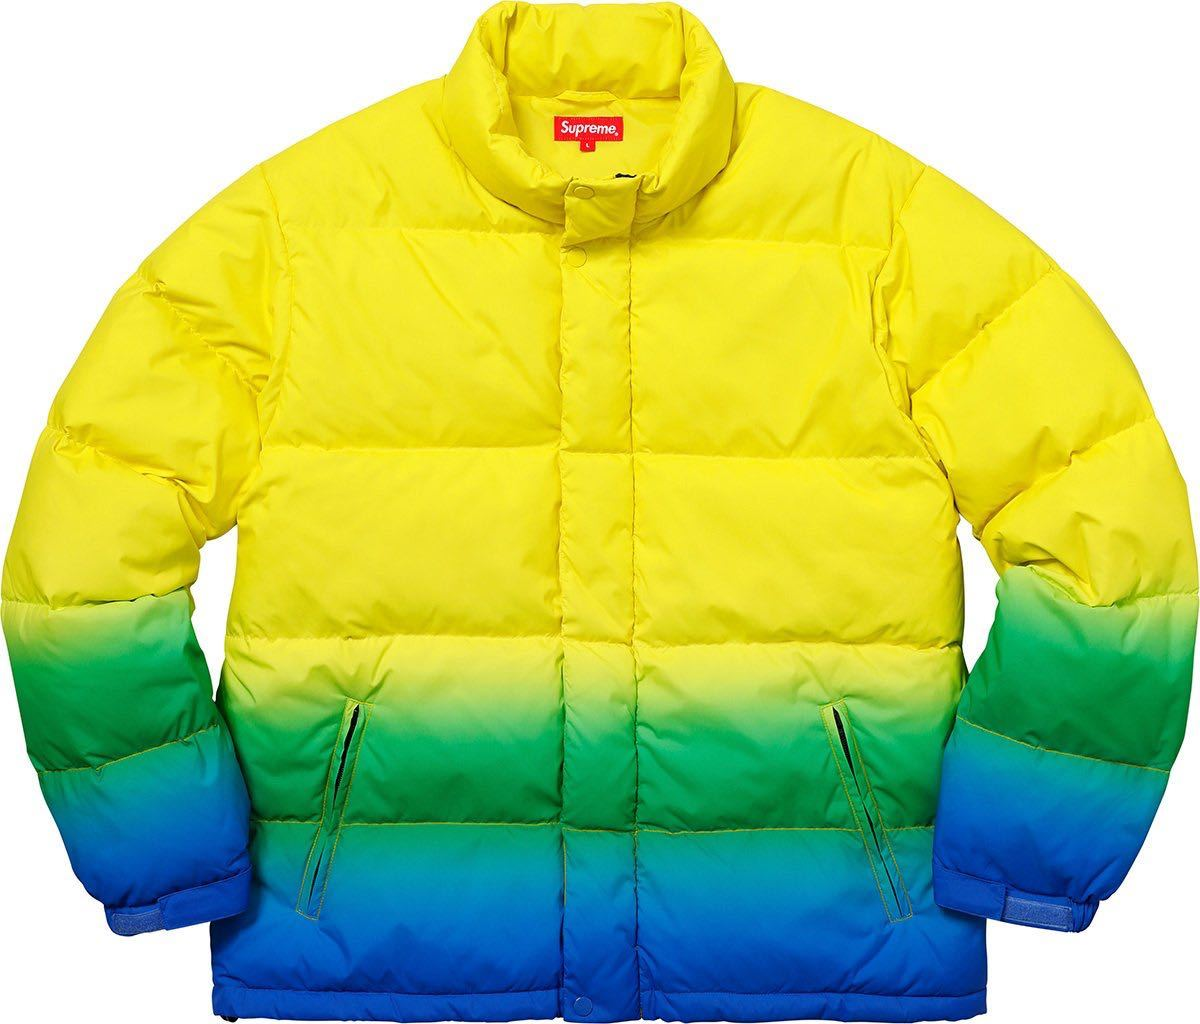 18ss Supreme - Gradient Puffy Jacket